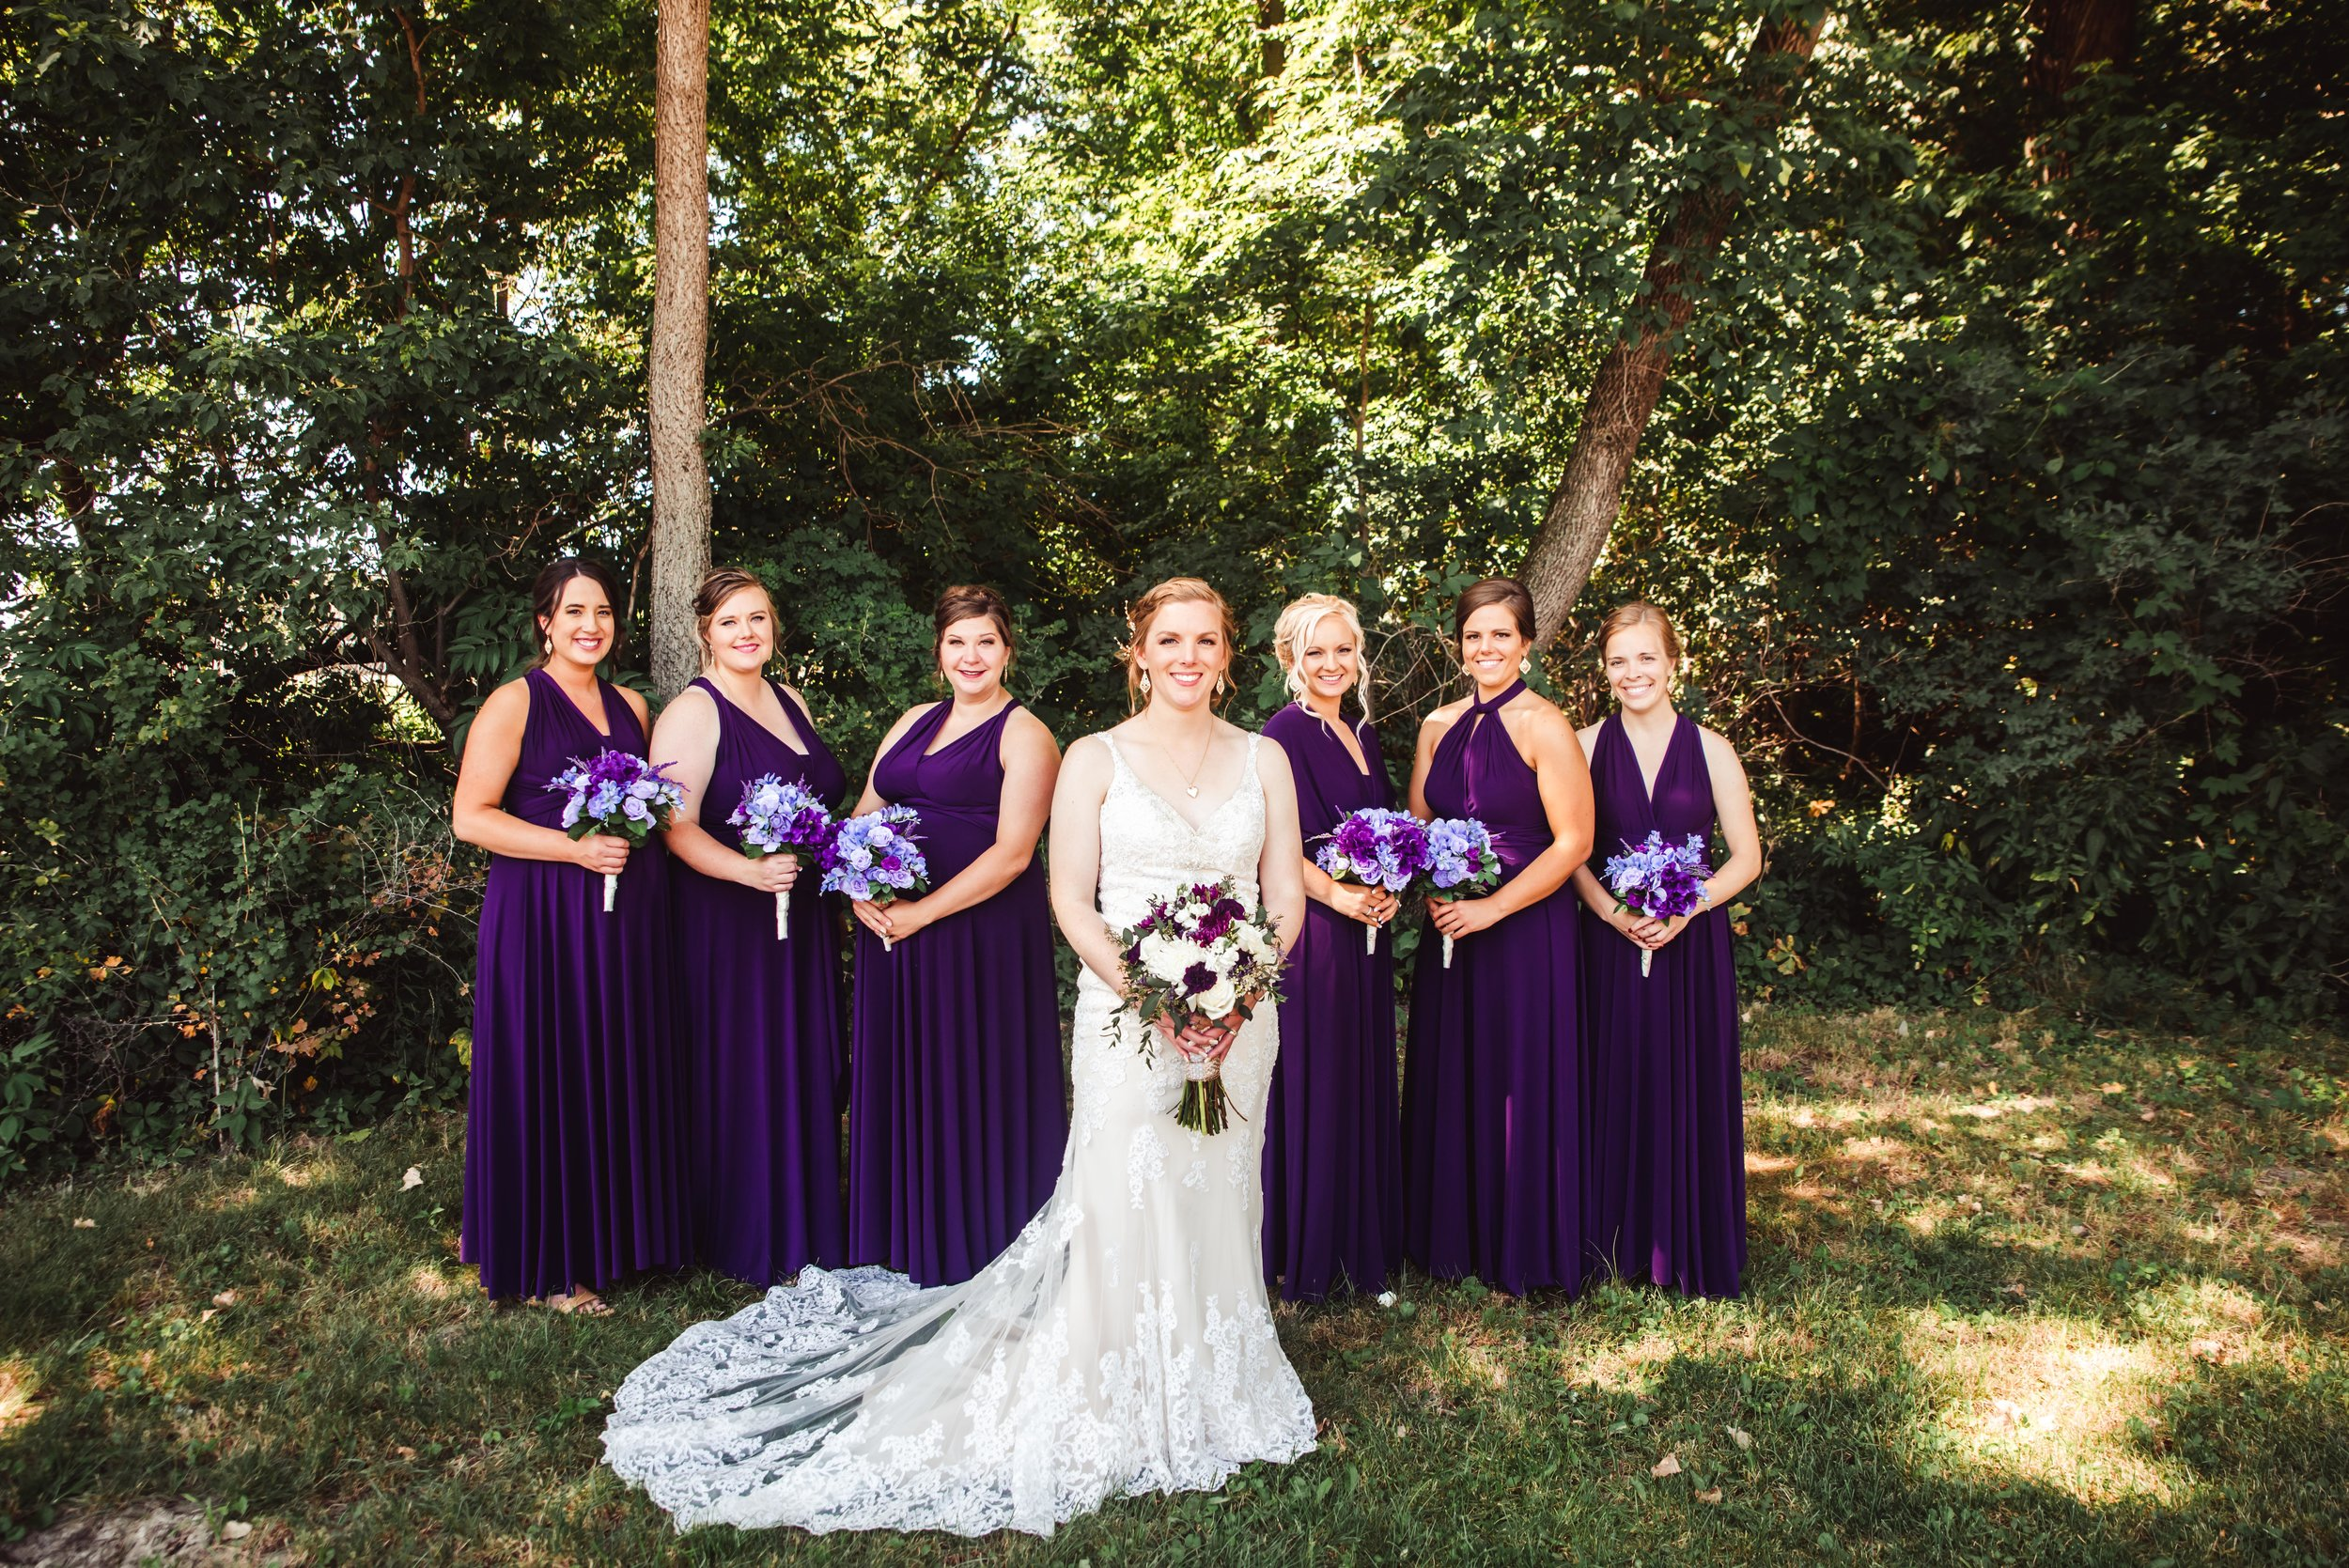 dang, this is a good looking bridal group!